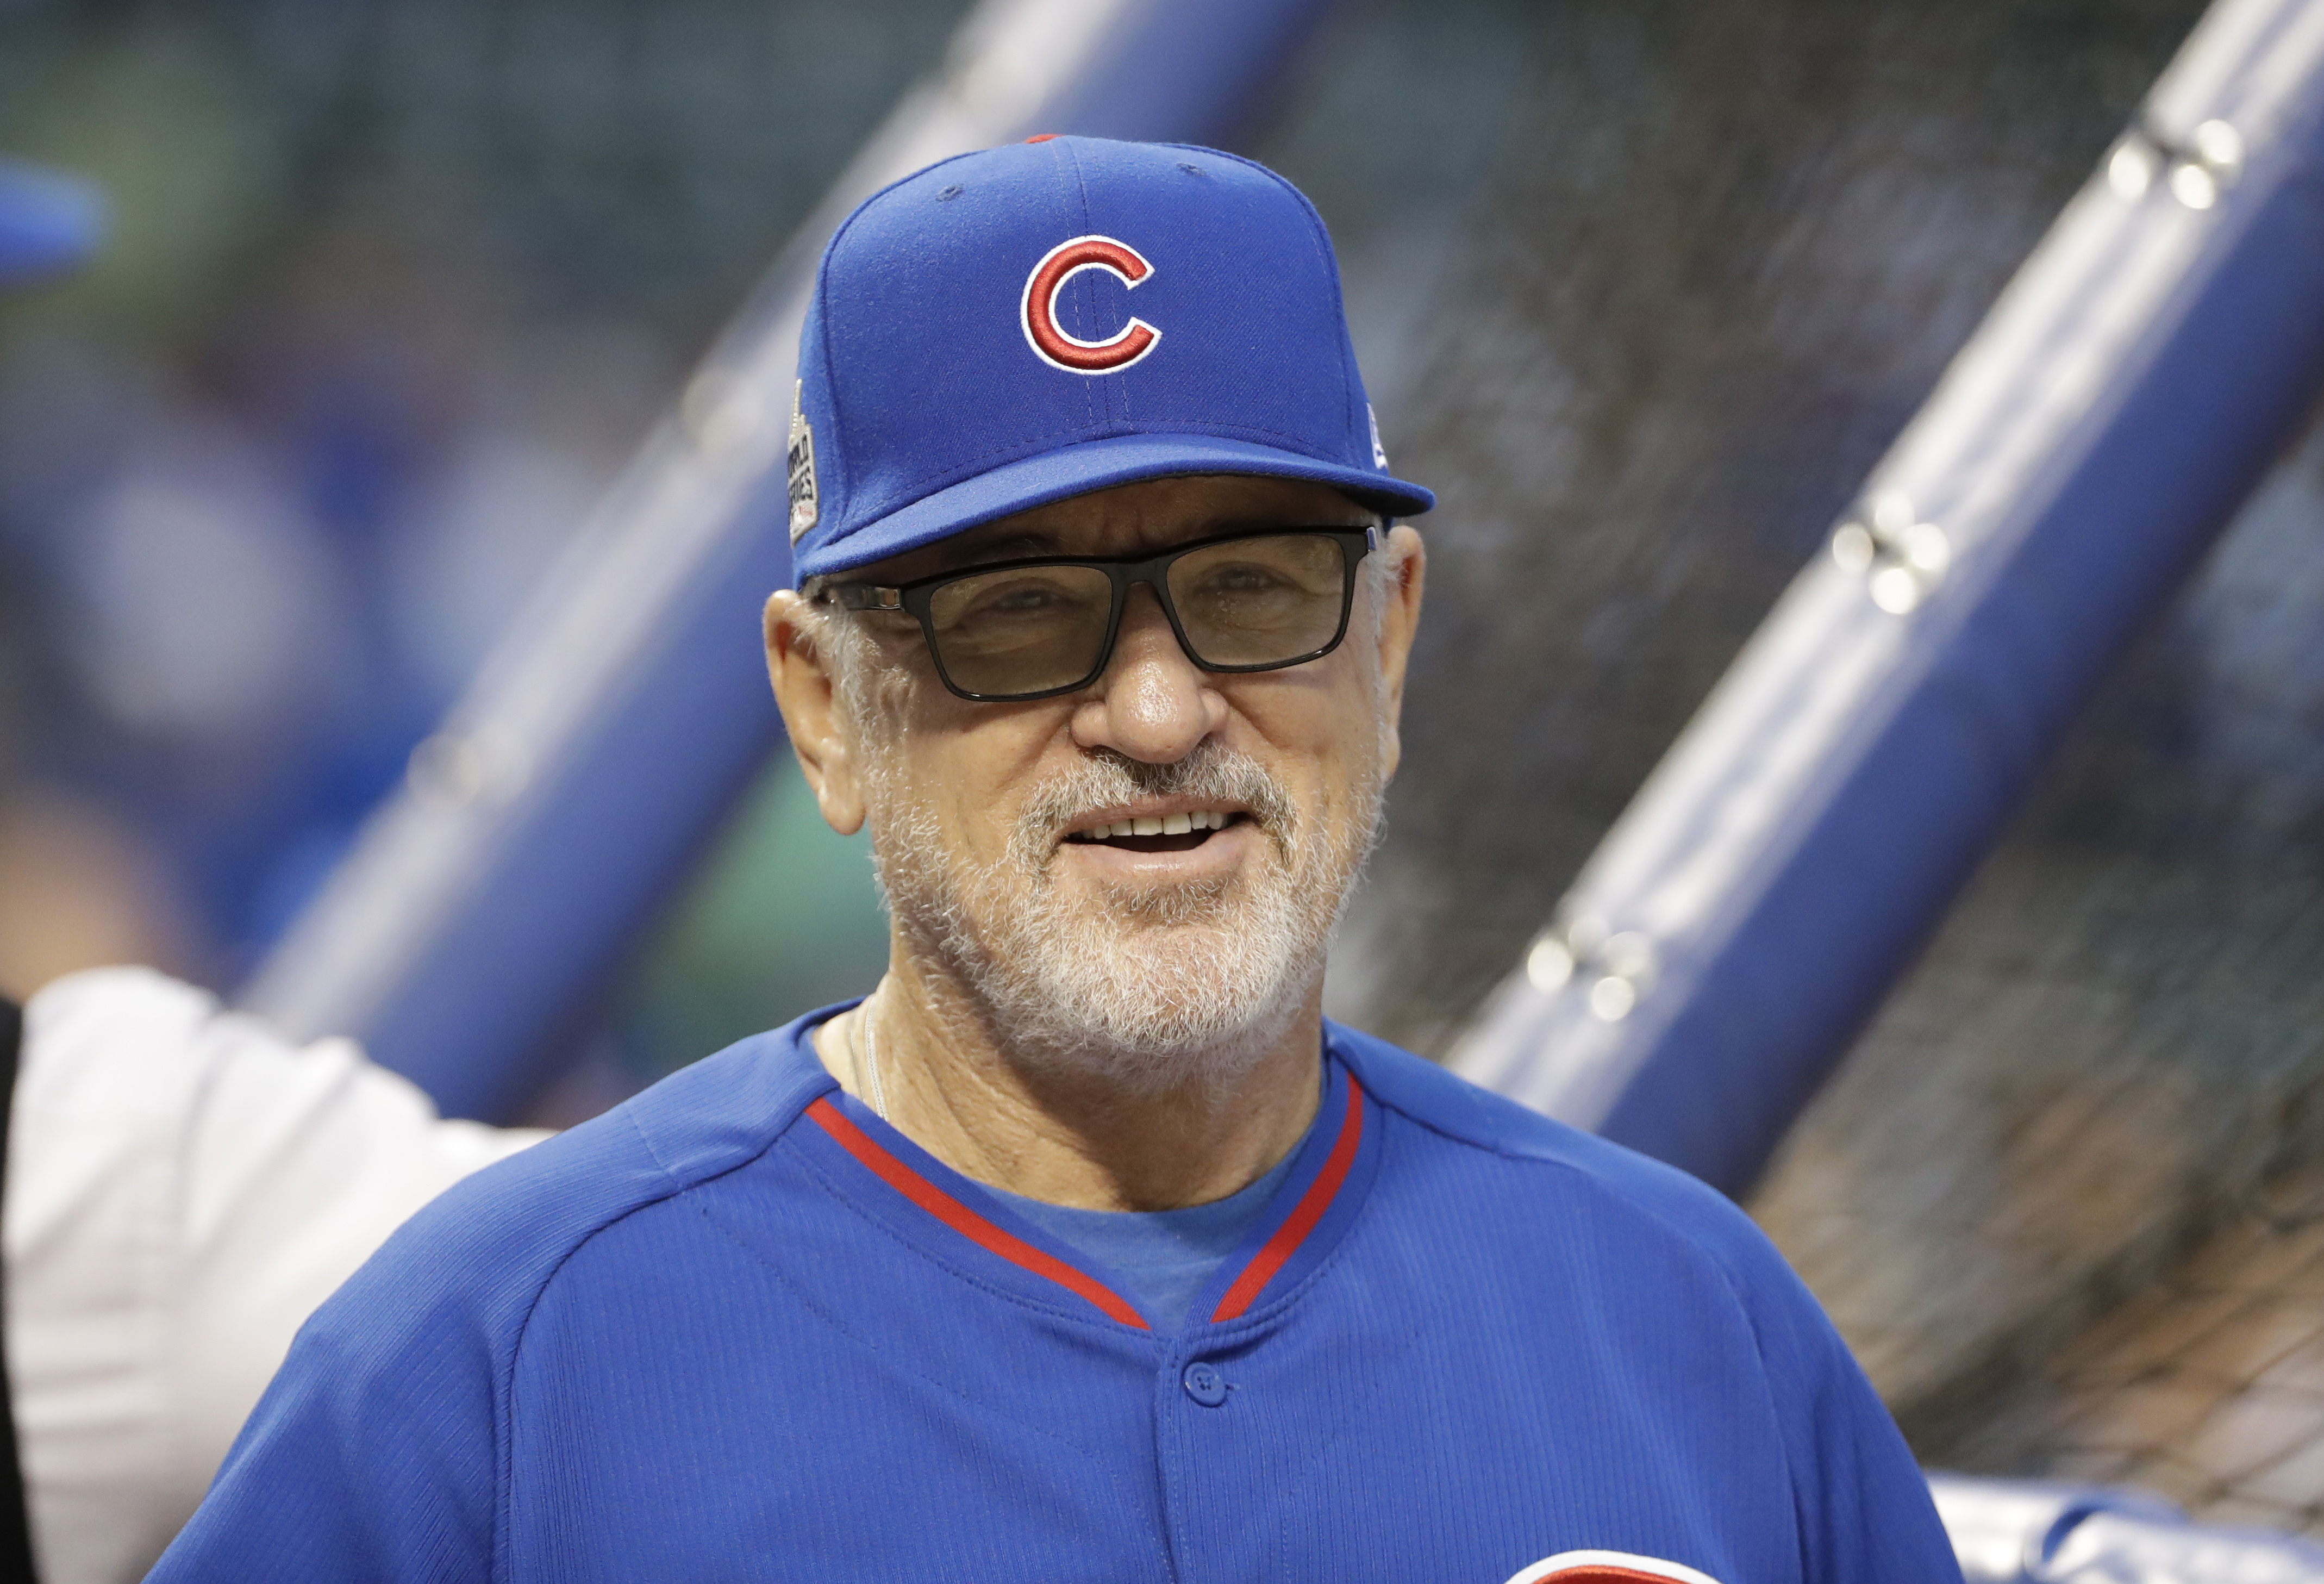 Chicago Cubs manager Joe Maddon smiles before Game 4 of the Major League Baseball World Series against the Cleveland Indians Saturday, Oct. 29, 2016, in Chicago. (AP Photo/David J. Phillip)